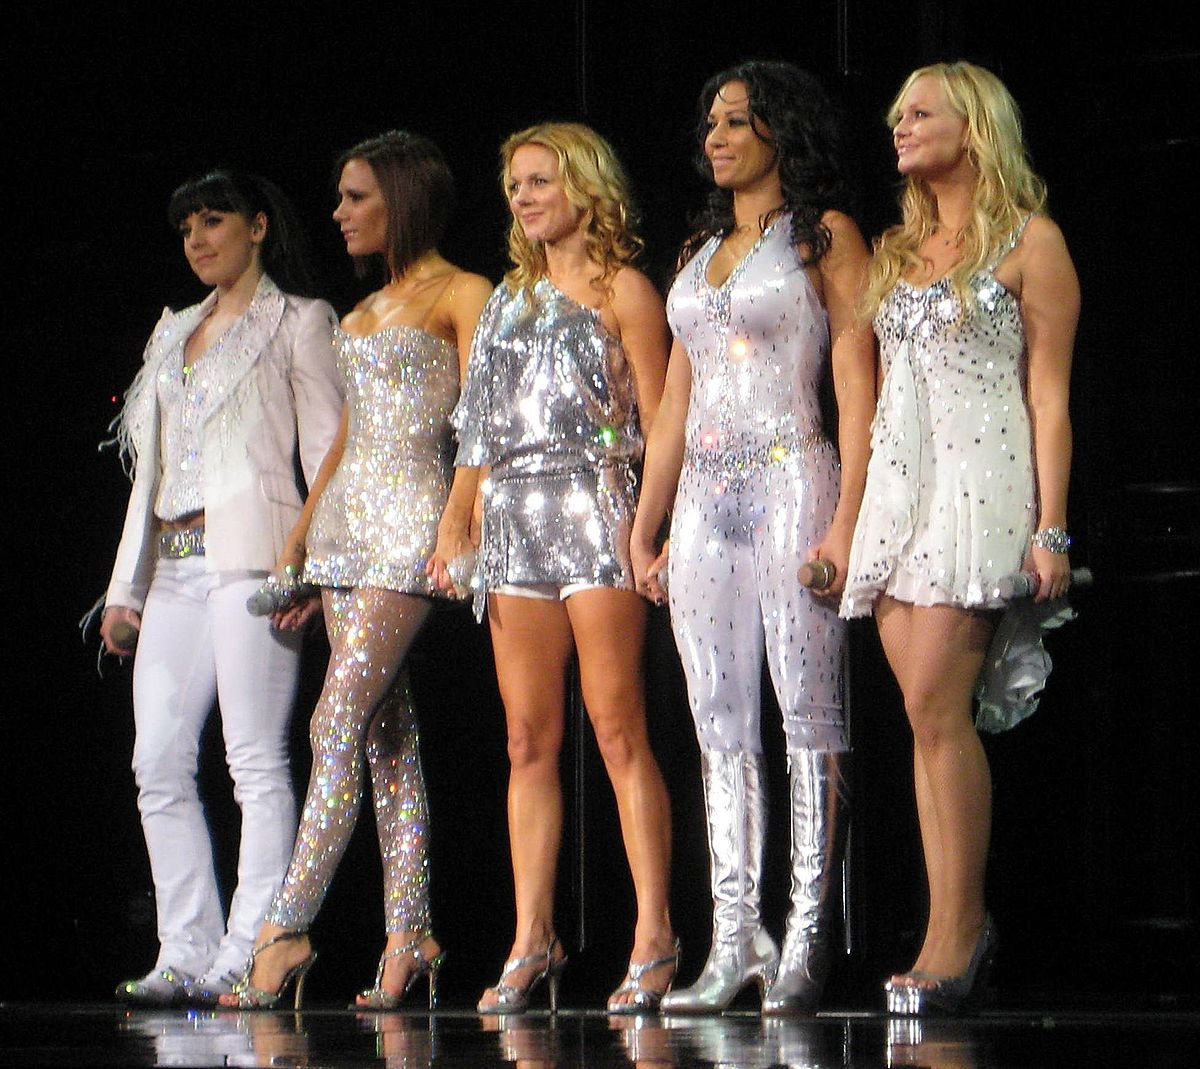 e0b3077549 Spice Girls - Wikipedia